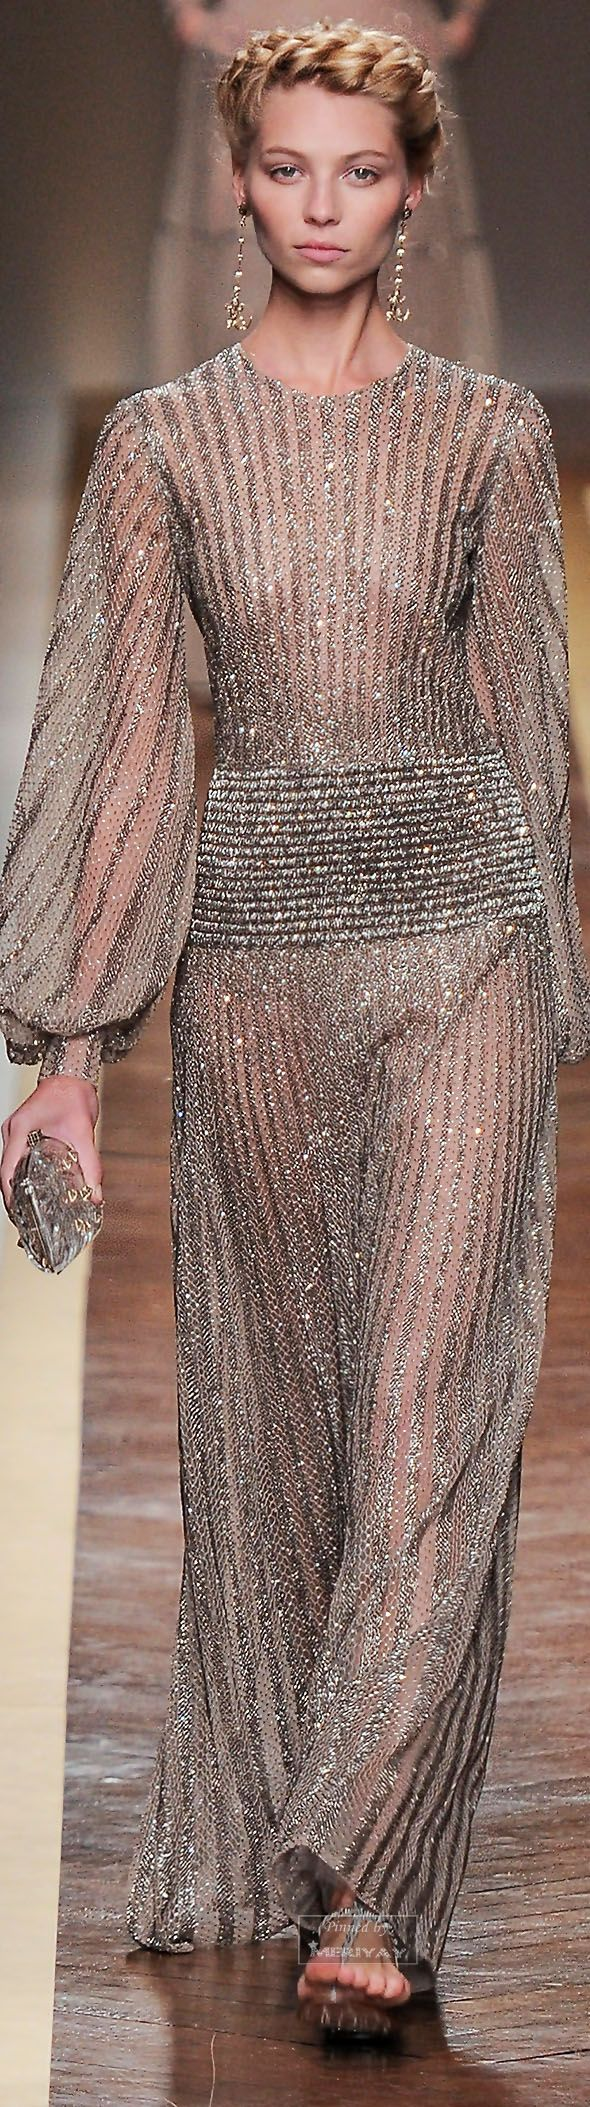 Valentino ~ Spring Sheer Metallic Gown, Nude 2012